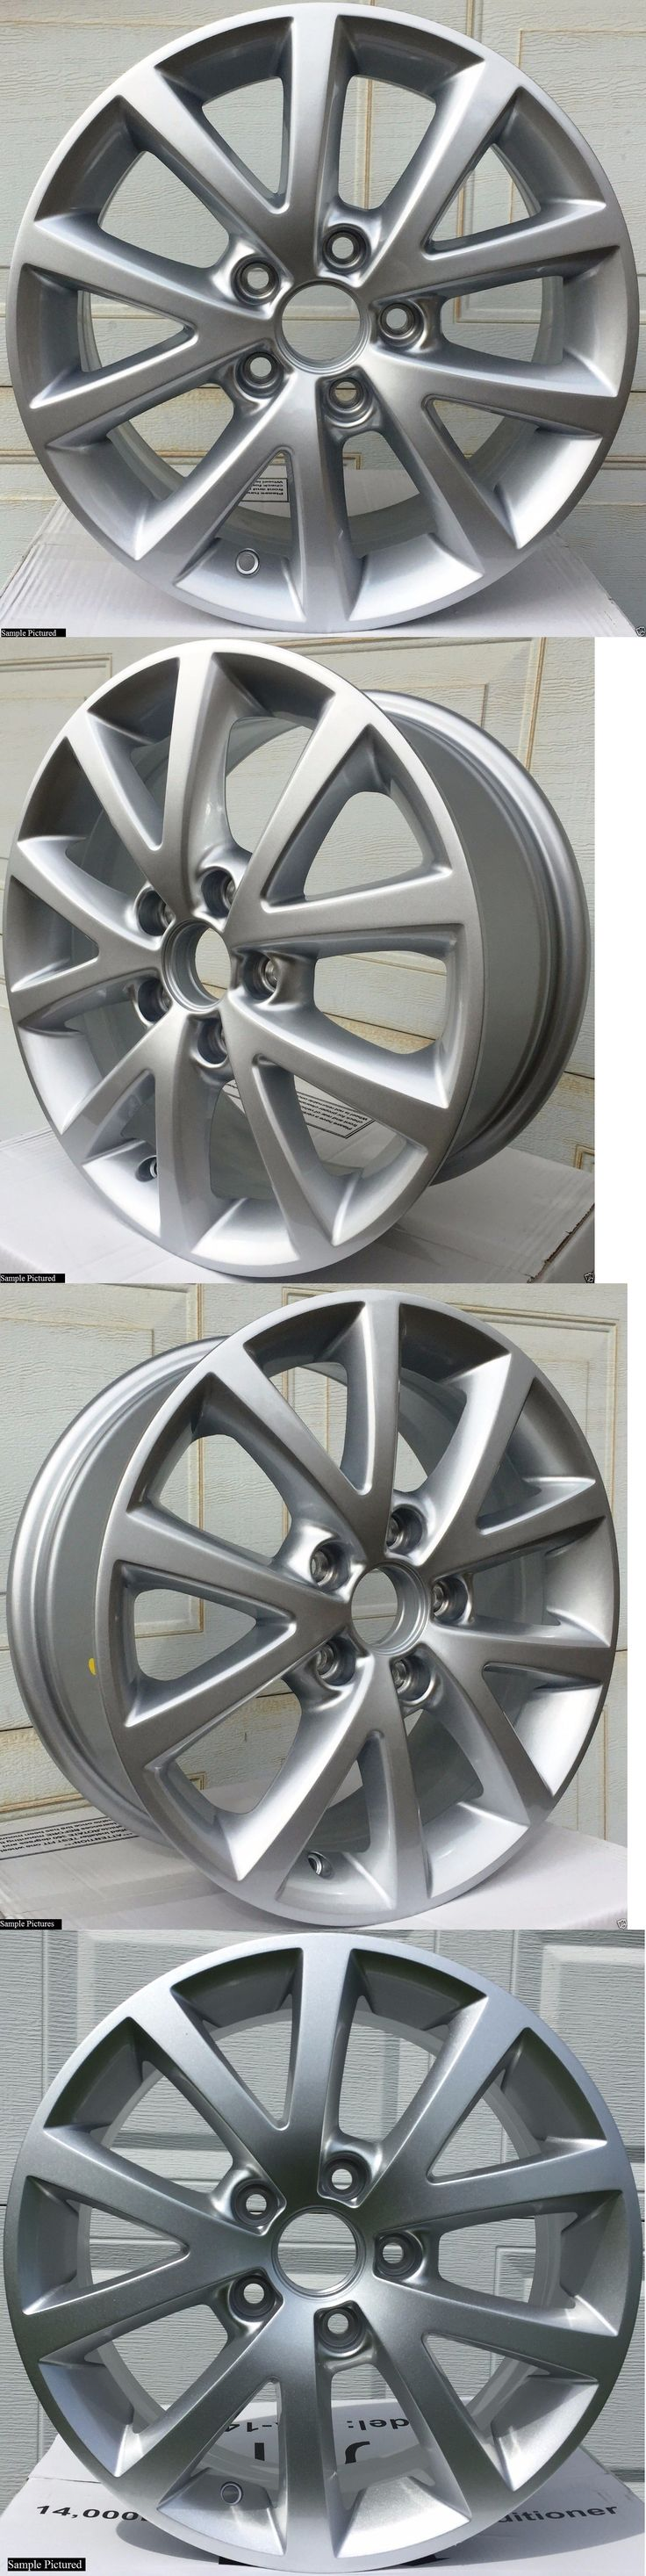 auto parts - general: 1 New 16 Wheel Rim For 2010 2011 2012 2013 2014 2015 Vw Volkswagen Jetta -143 -> BUY IT NOW ONLY: $74 on eBay!